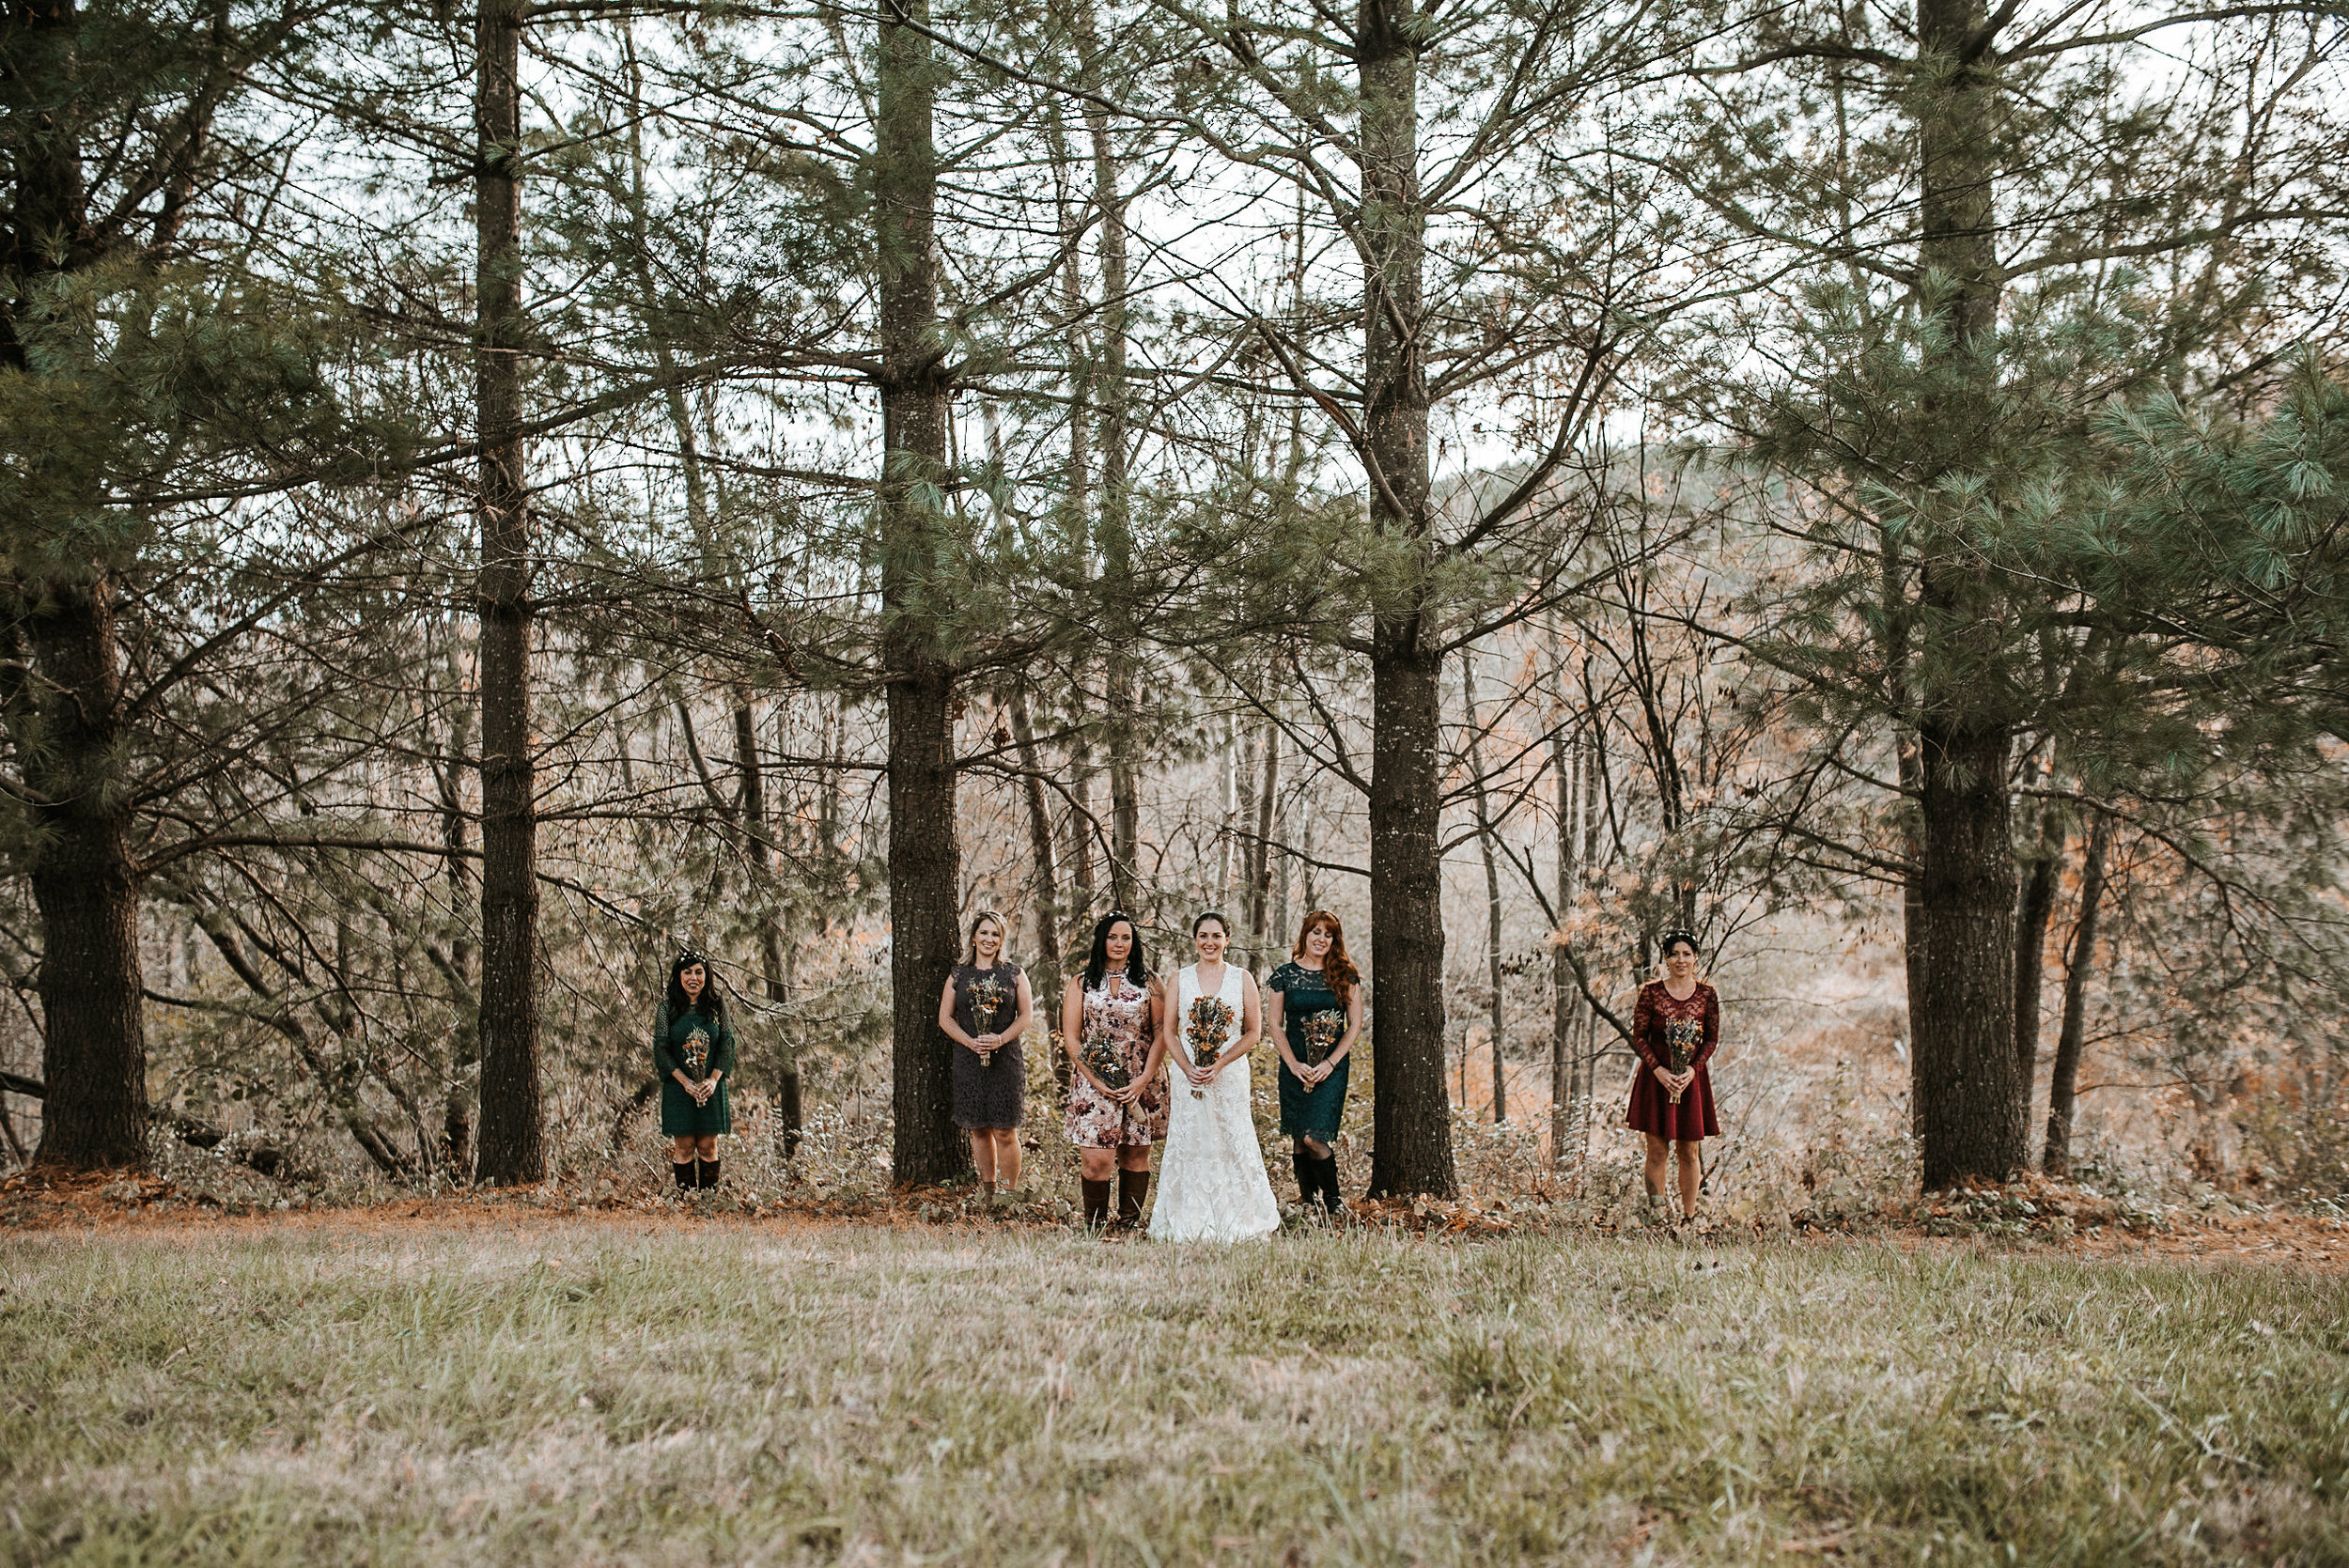 Bride and bridesmaids standing in tree line